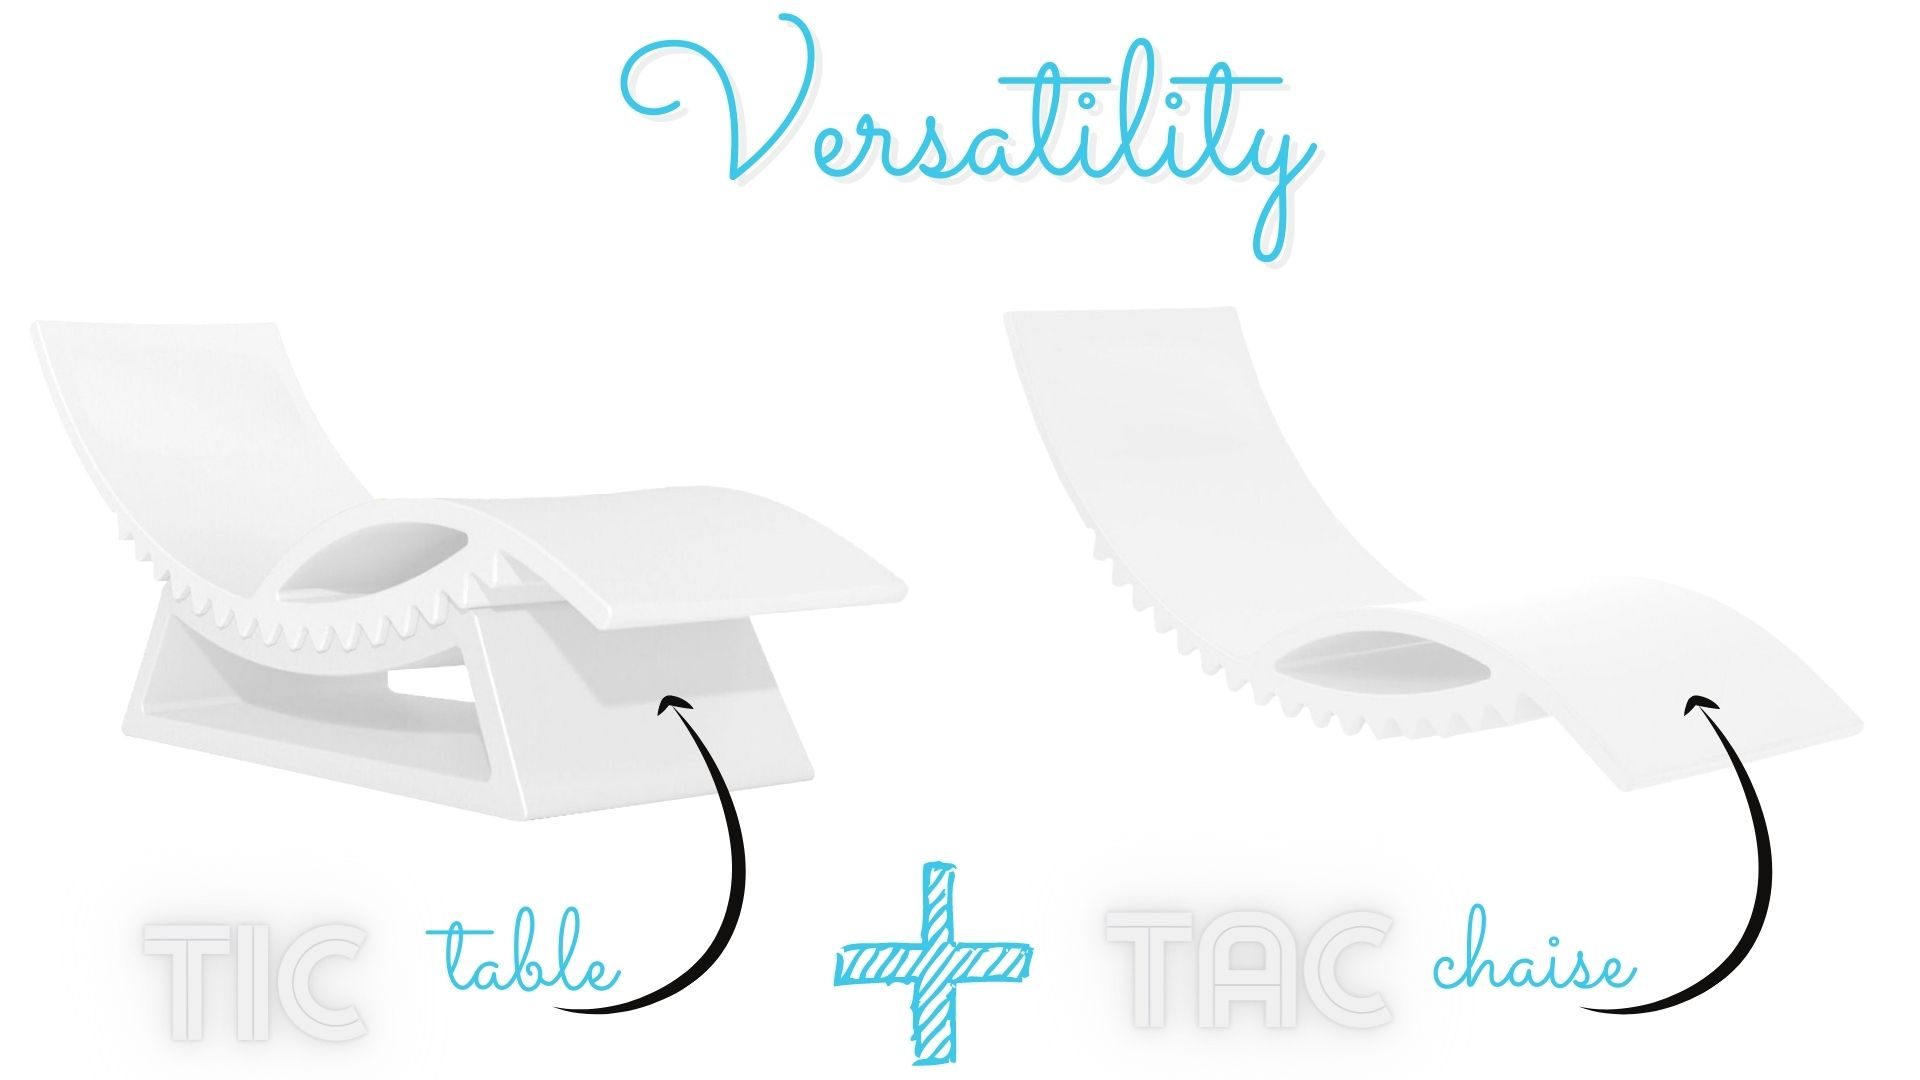 tic-tac-chaise-and table versatility